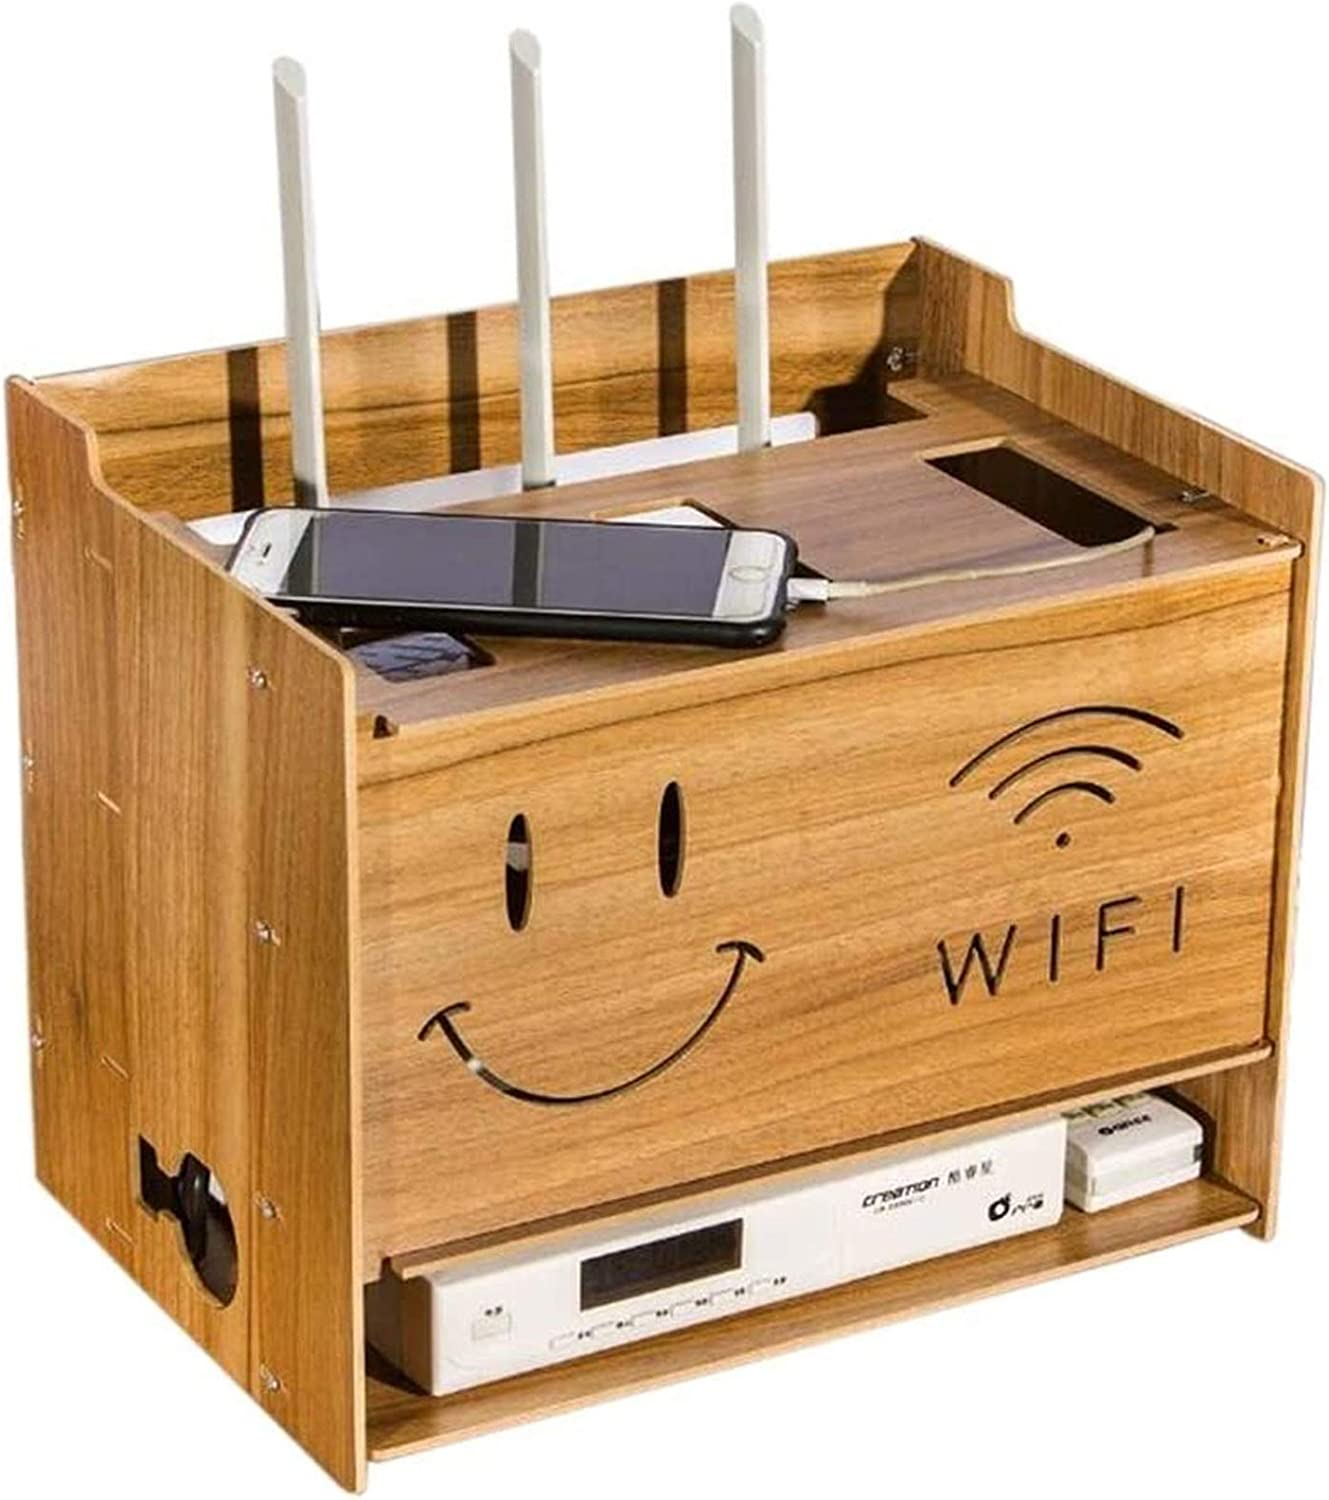 Weekly update Recommendation GJJSZ Router Rack Multi-Function Cable Manage Box Storage